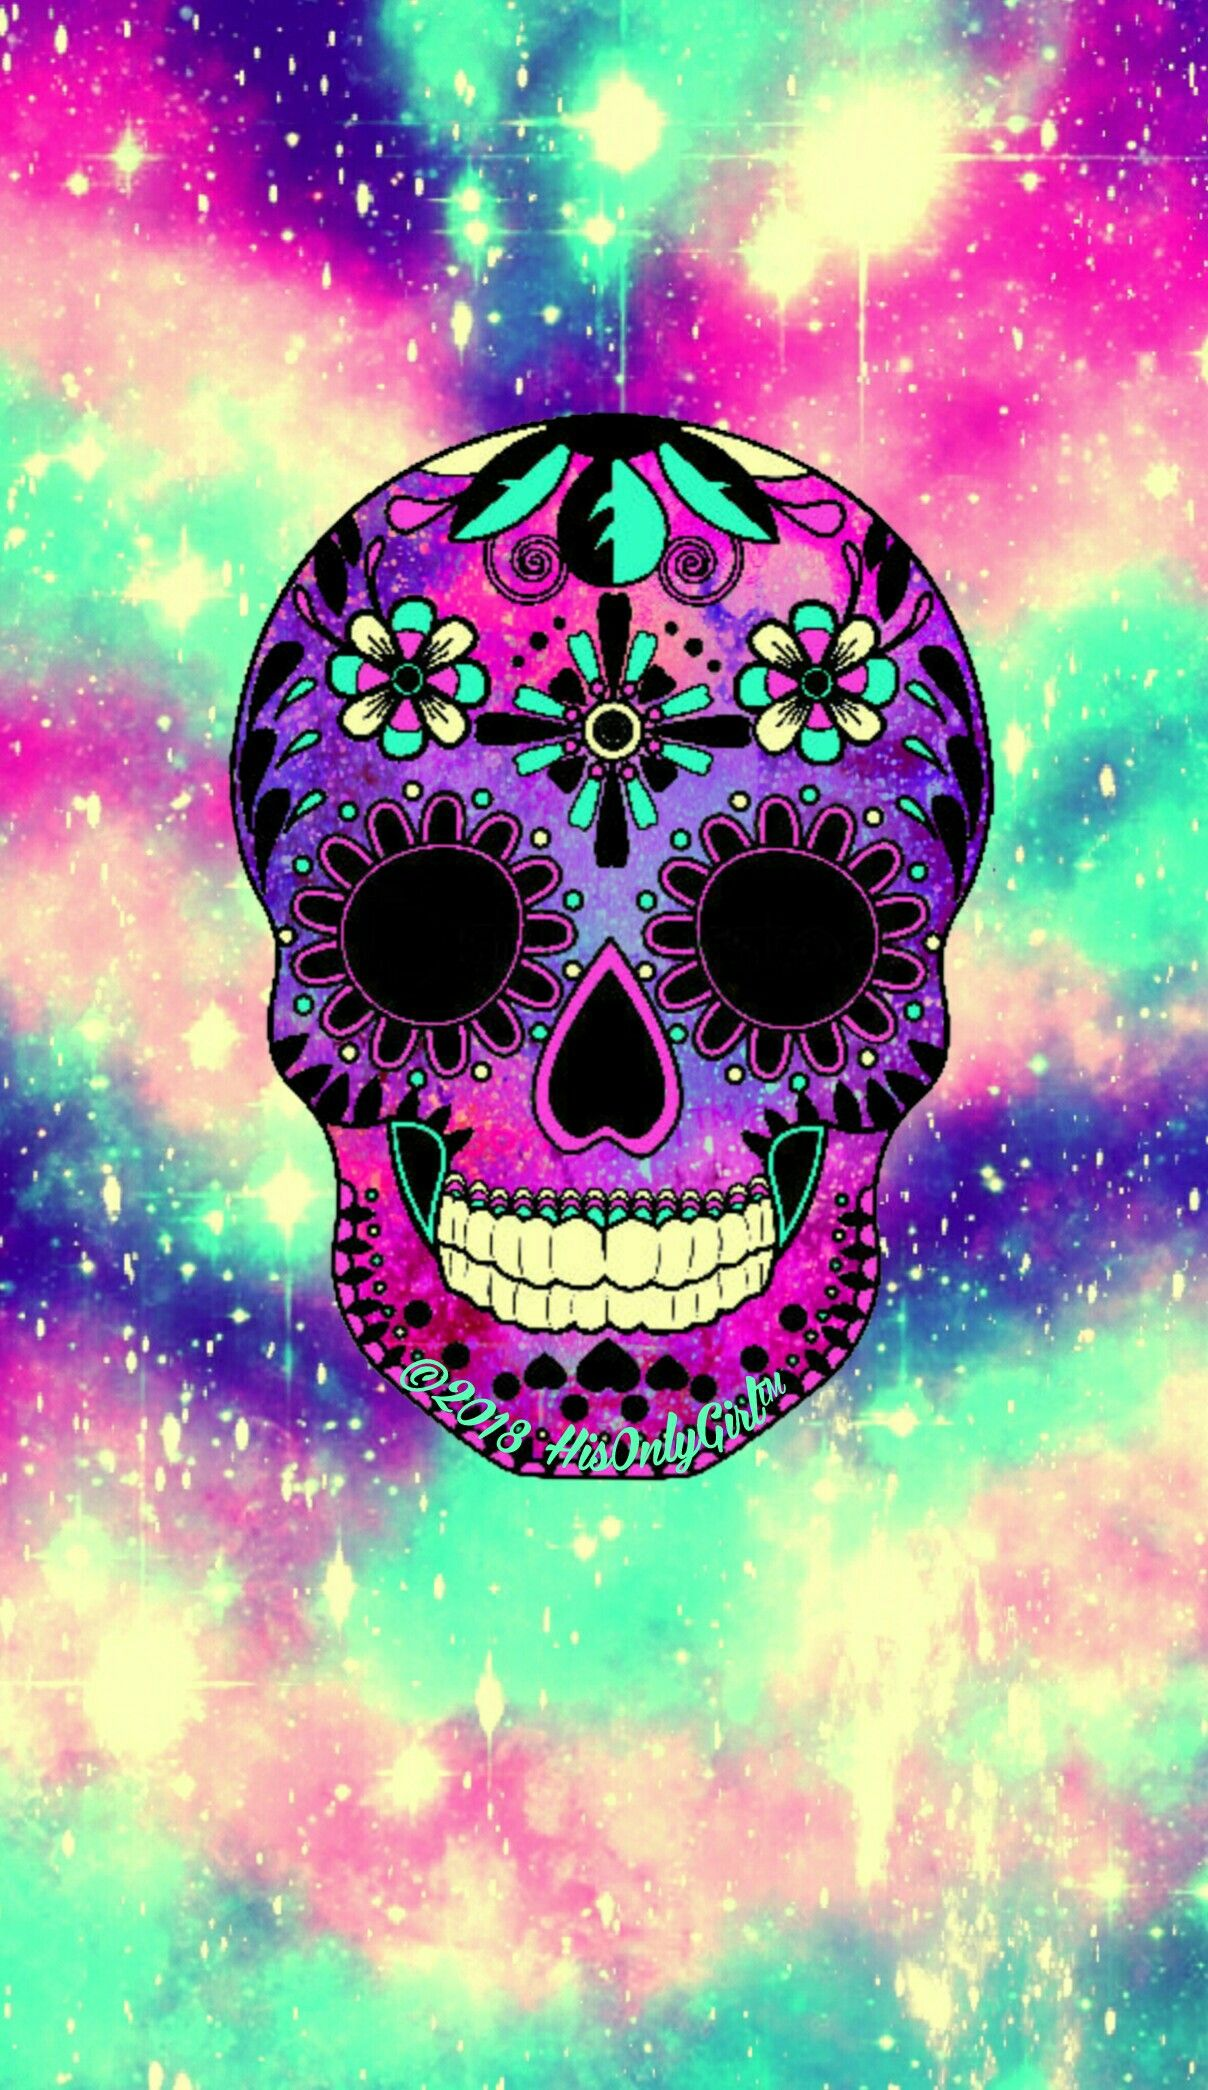 Skull candy iPhone & Android galaxy wallpaper I created